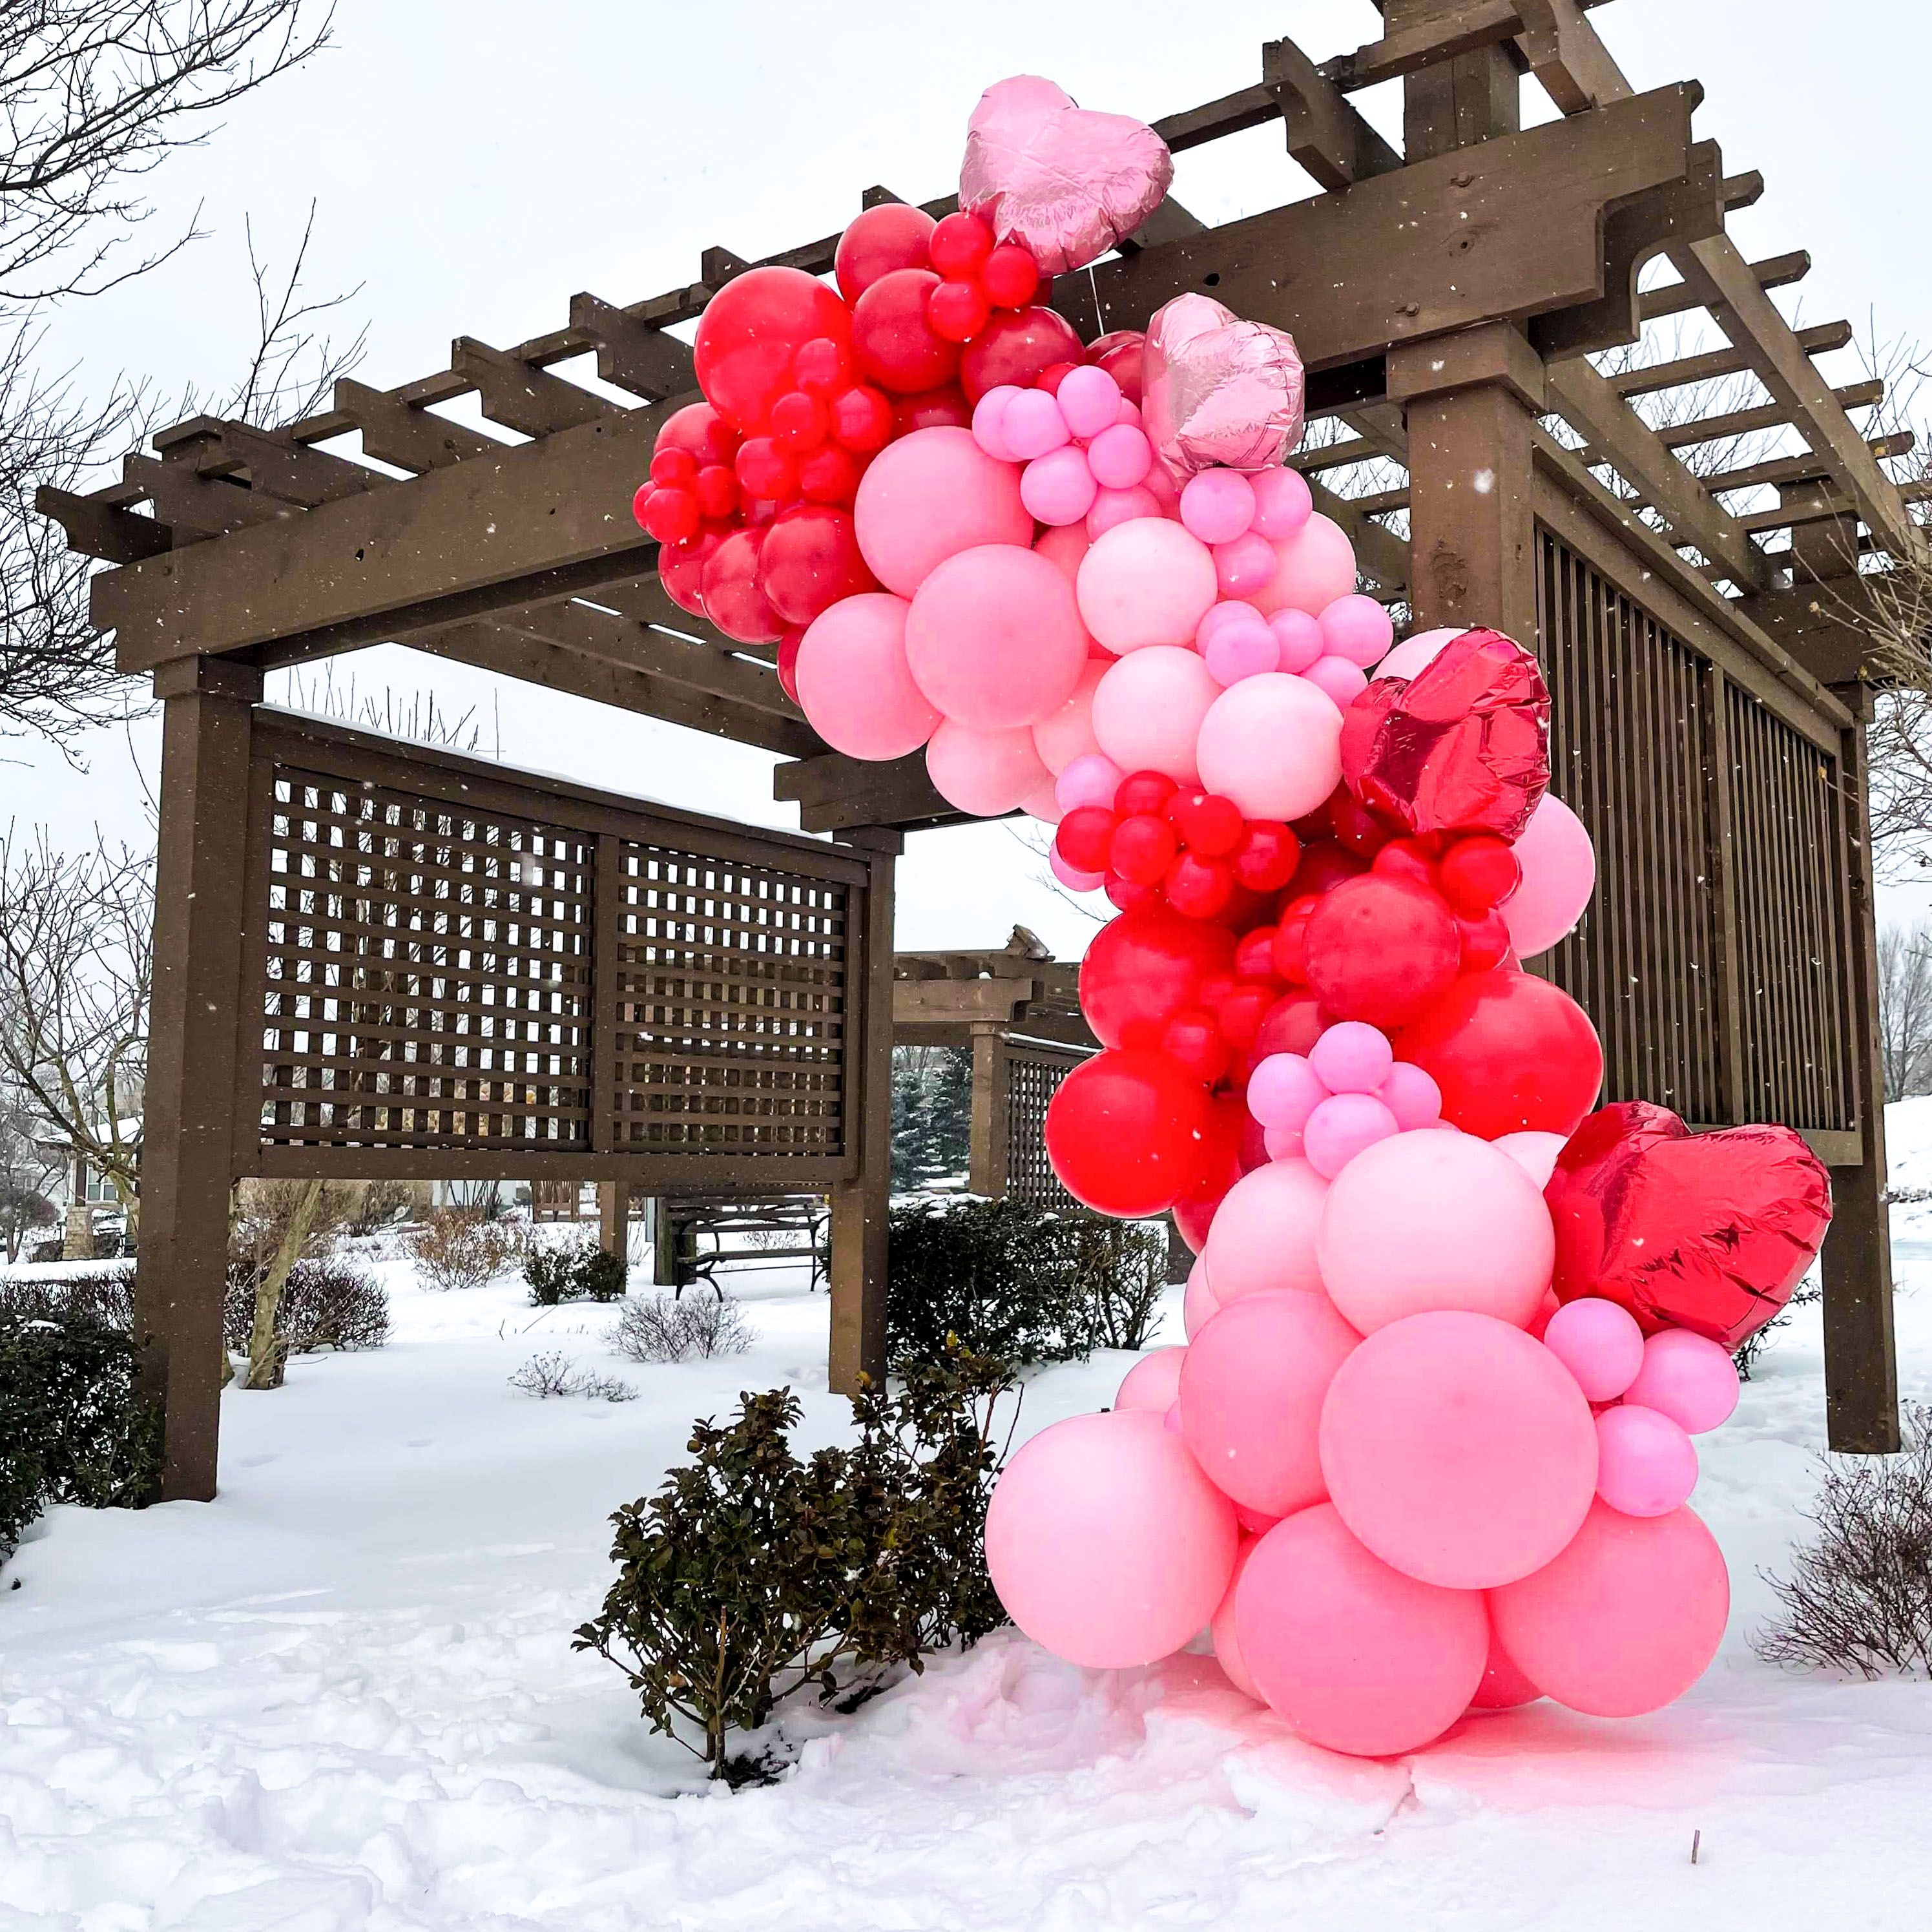 A pink and red balloon garland in the show